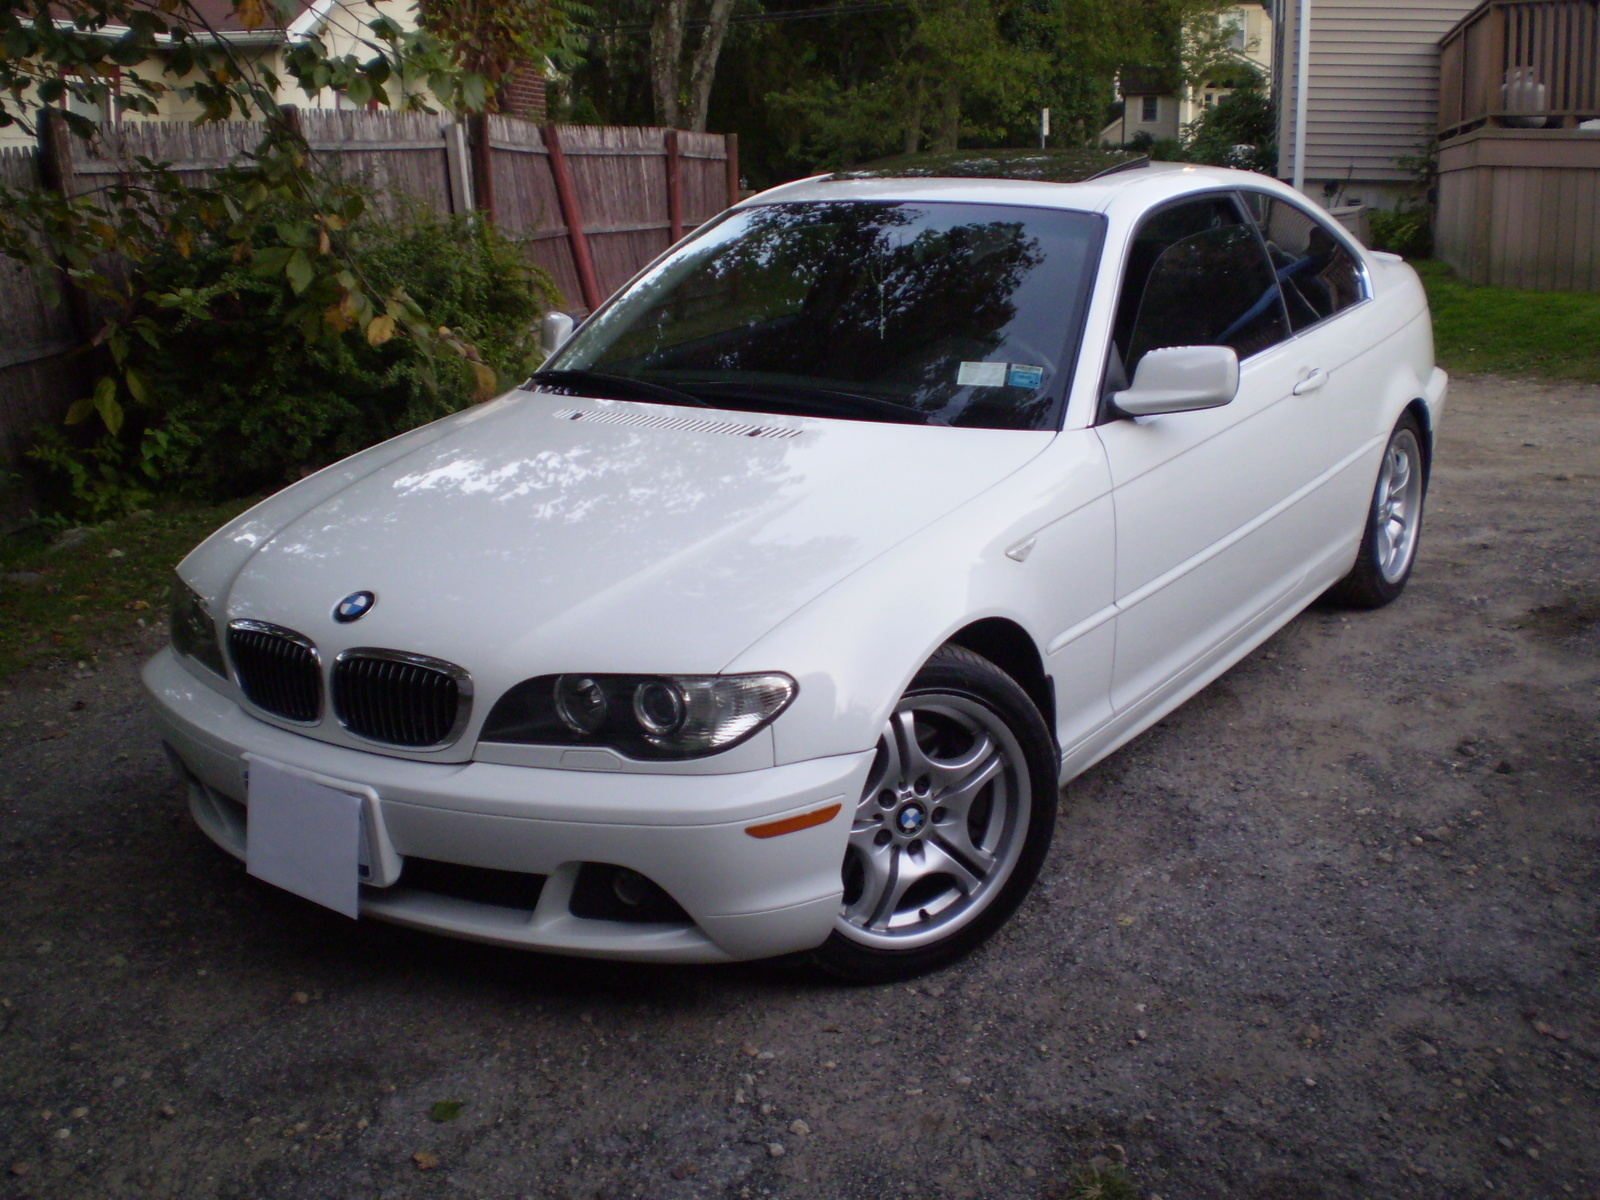 BMW 3 series 330Ci 2004 photo - 1